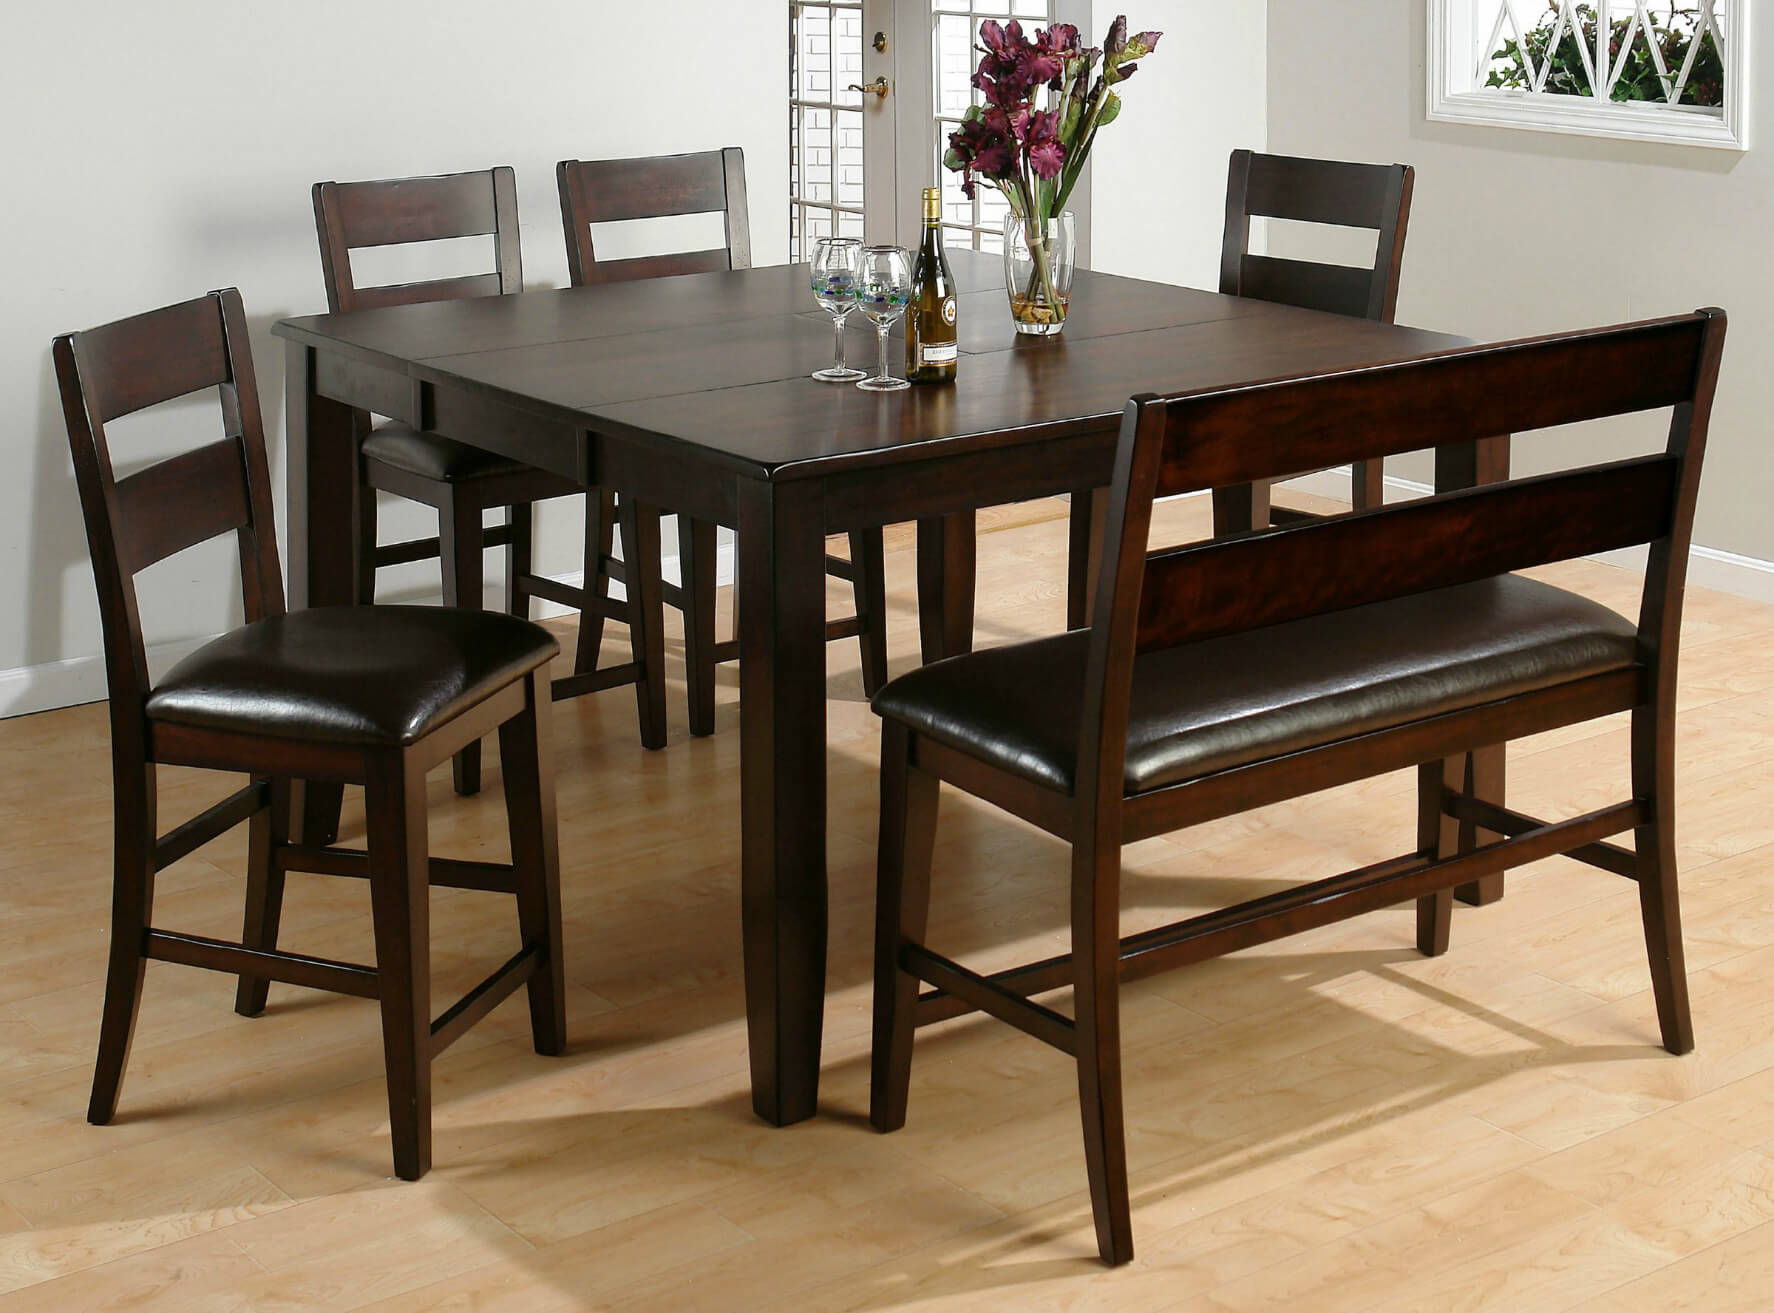 Kitchen Table Dining Set With Extension To Seat